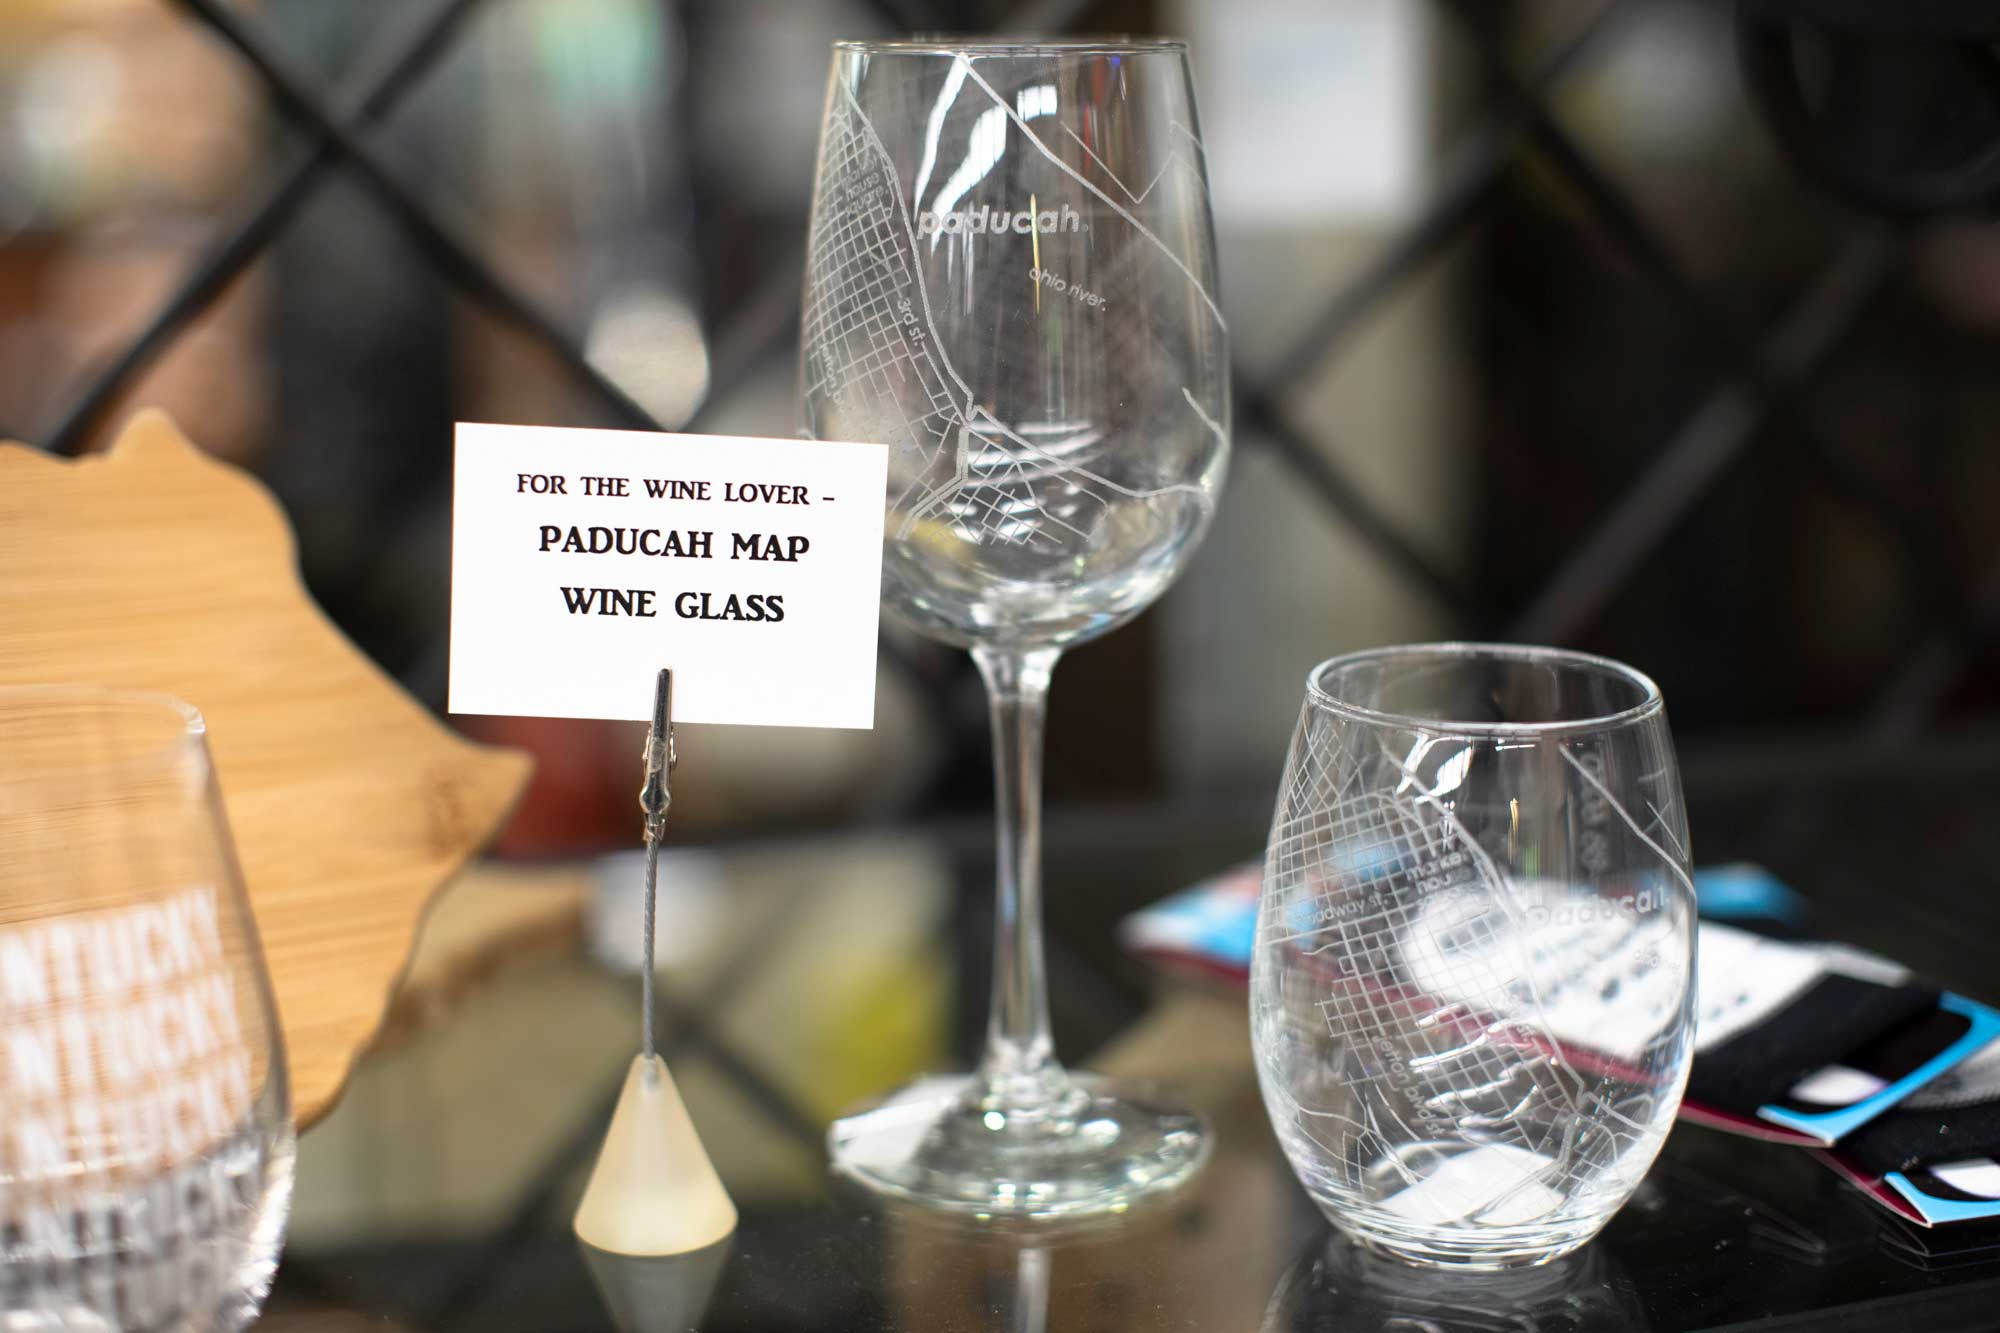 Paducah road map wine glass and short glass